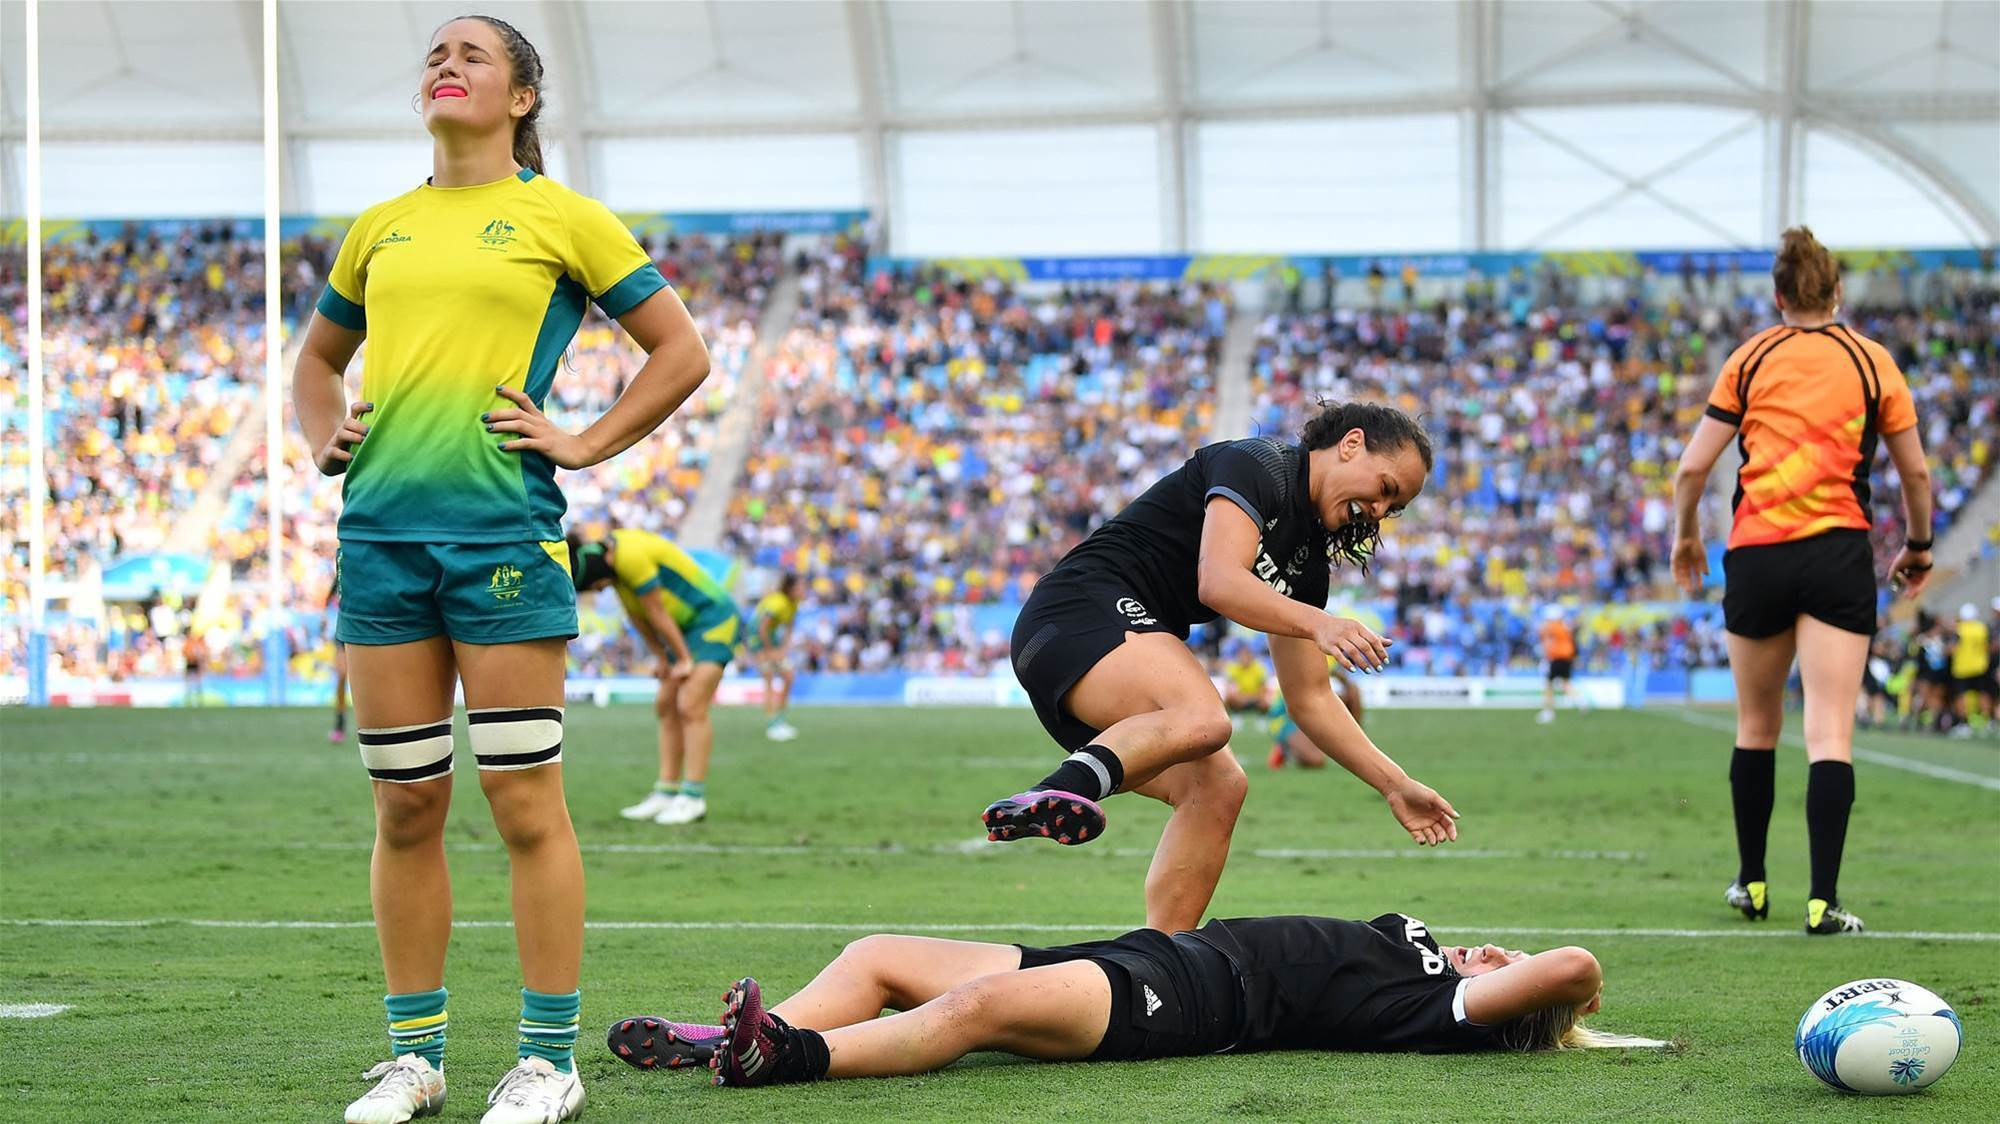 Commonwealth Games loss to motivate Aussie 7s